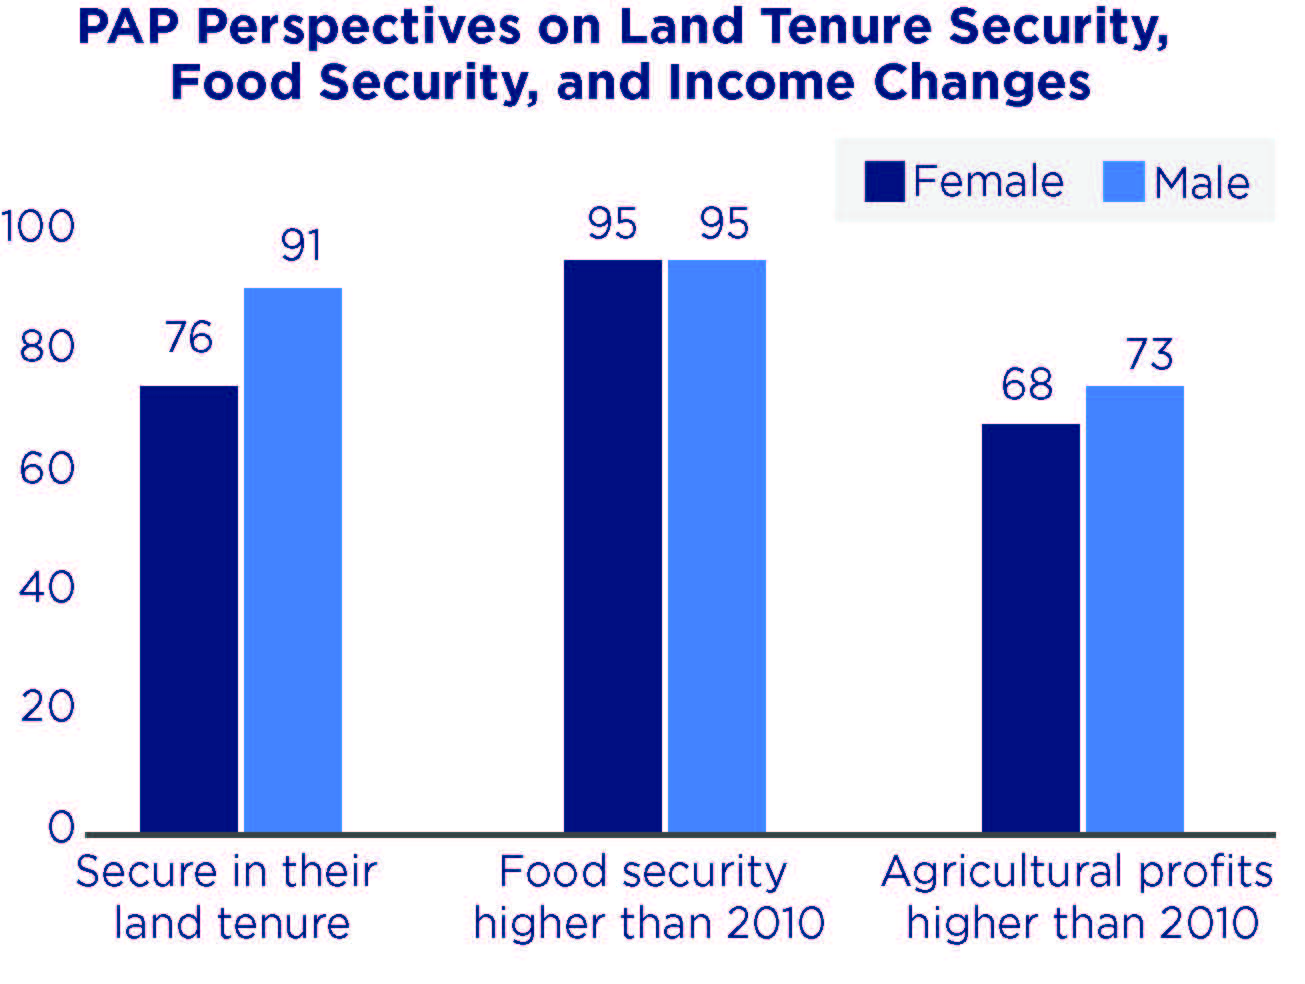 Chart on PAP Perspectives on land tenure security, food security, and income changes.